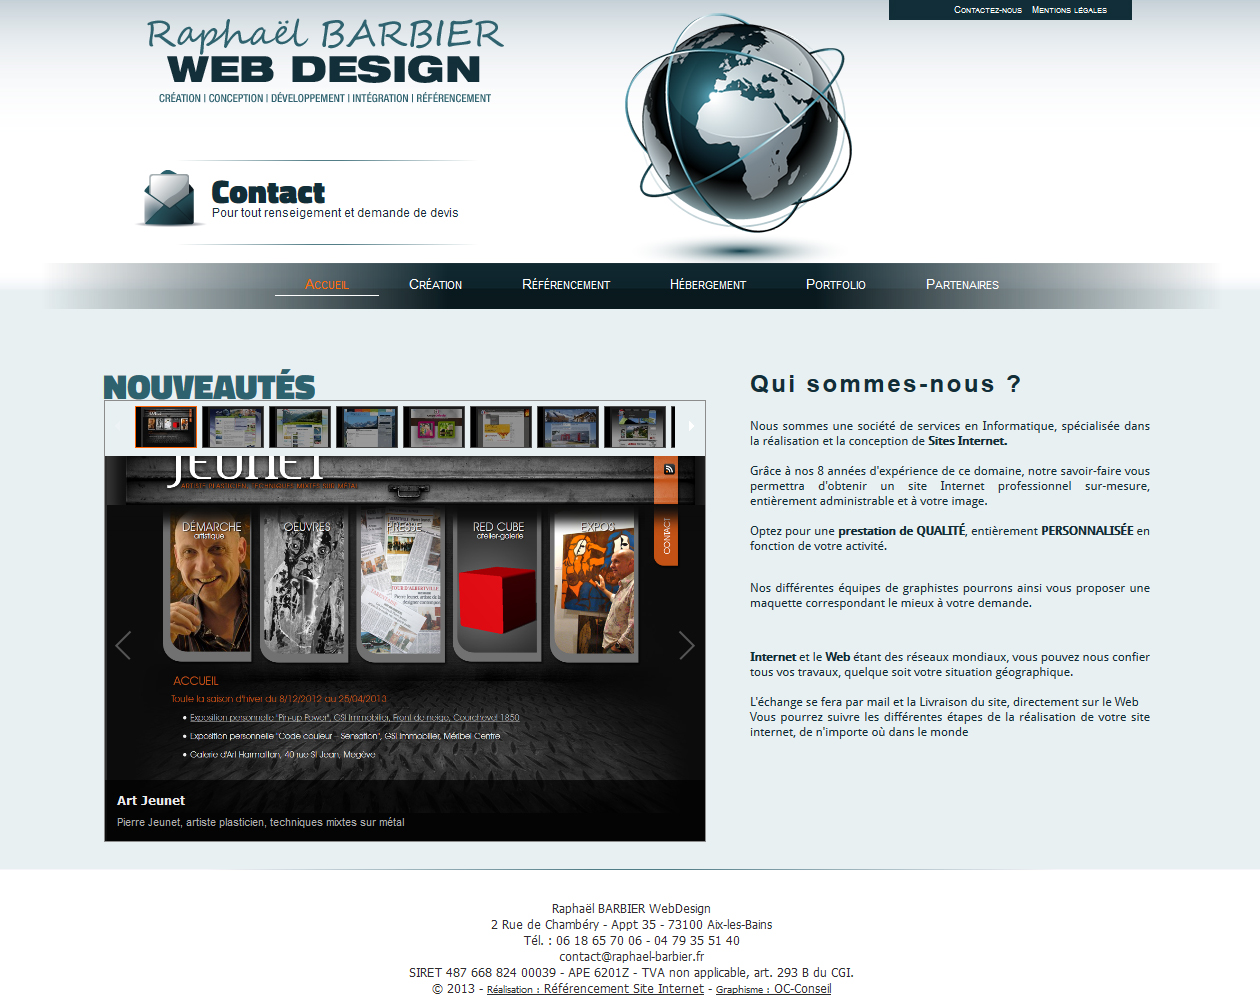 Conceptions et Créations de sites Internet - Raphaël BARBIER WebDesign